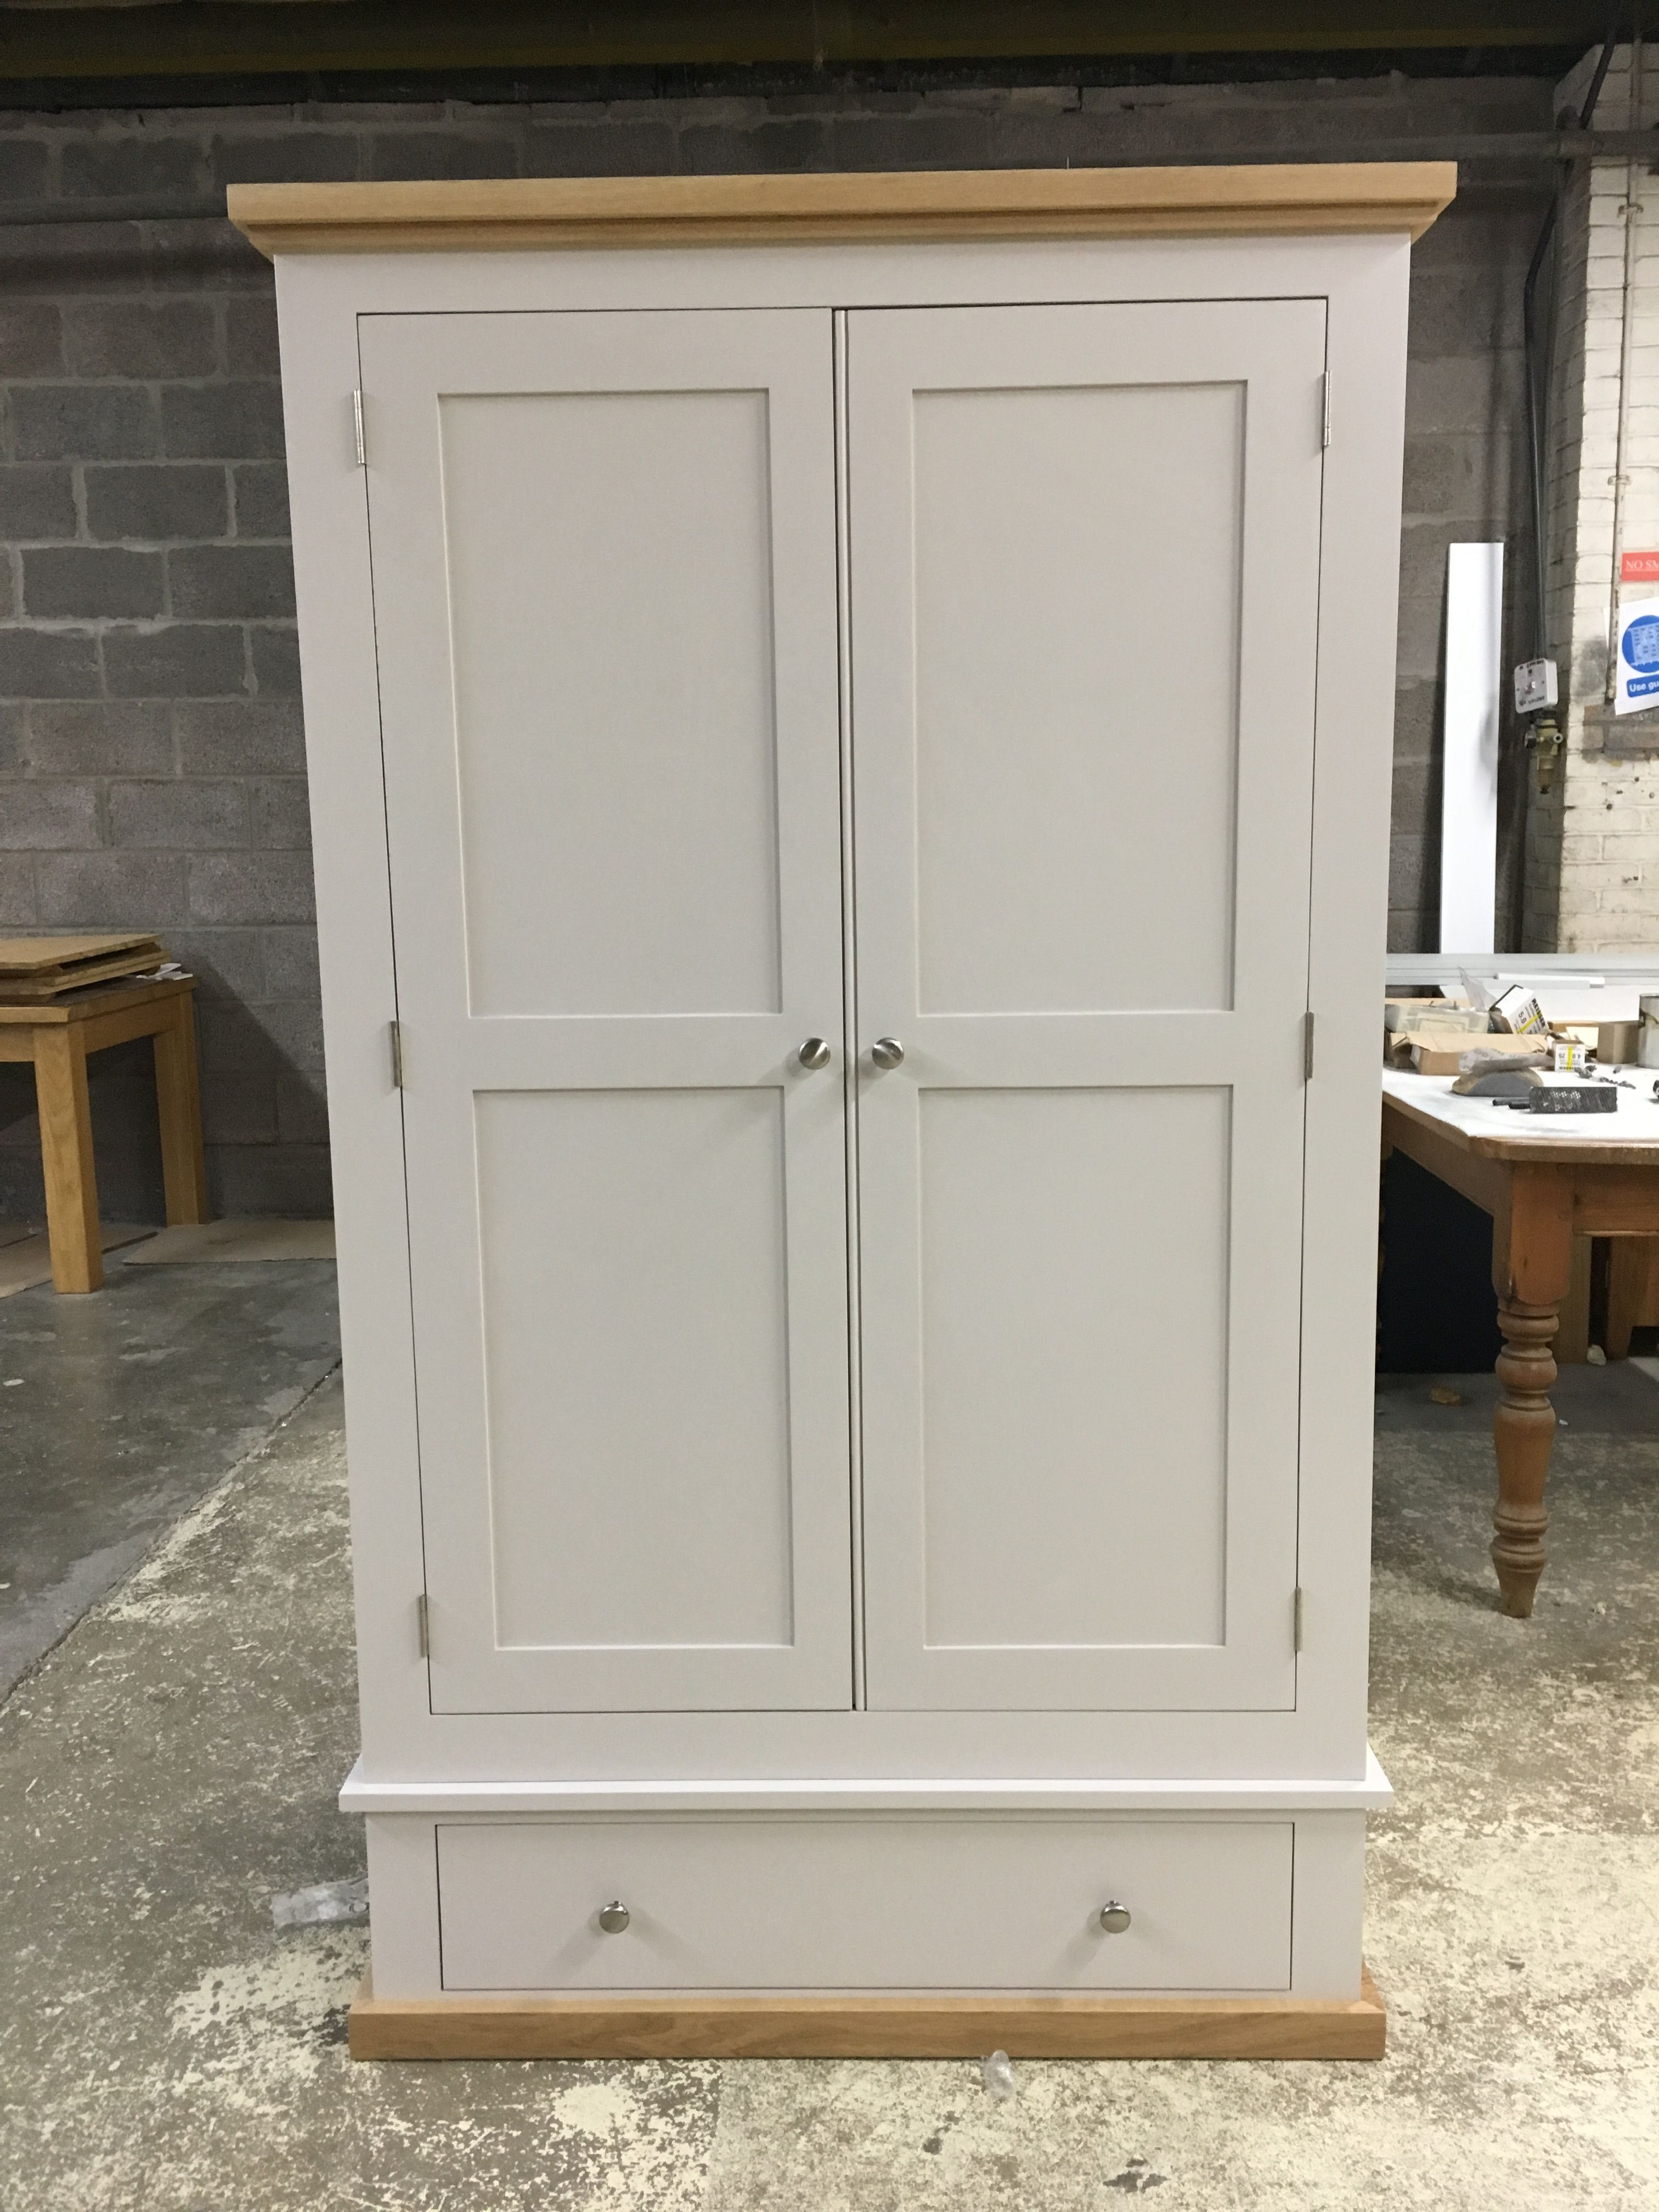 Bespoke Wardrobe Painted In Farrow And Ball Skimming Stone Paint With An Oak Cornice Pine Furniture Painted Wardrobe Beach Furniture